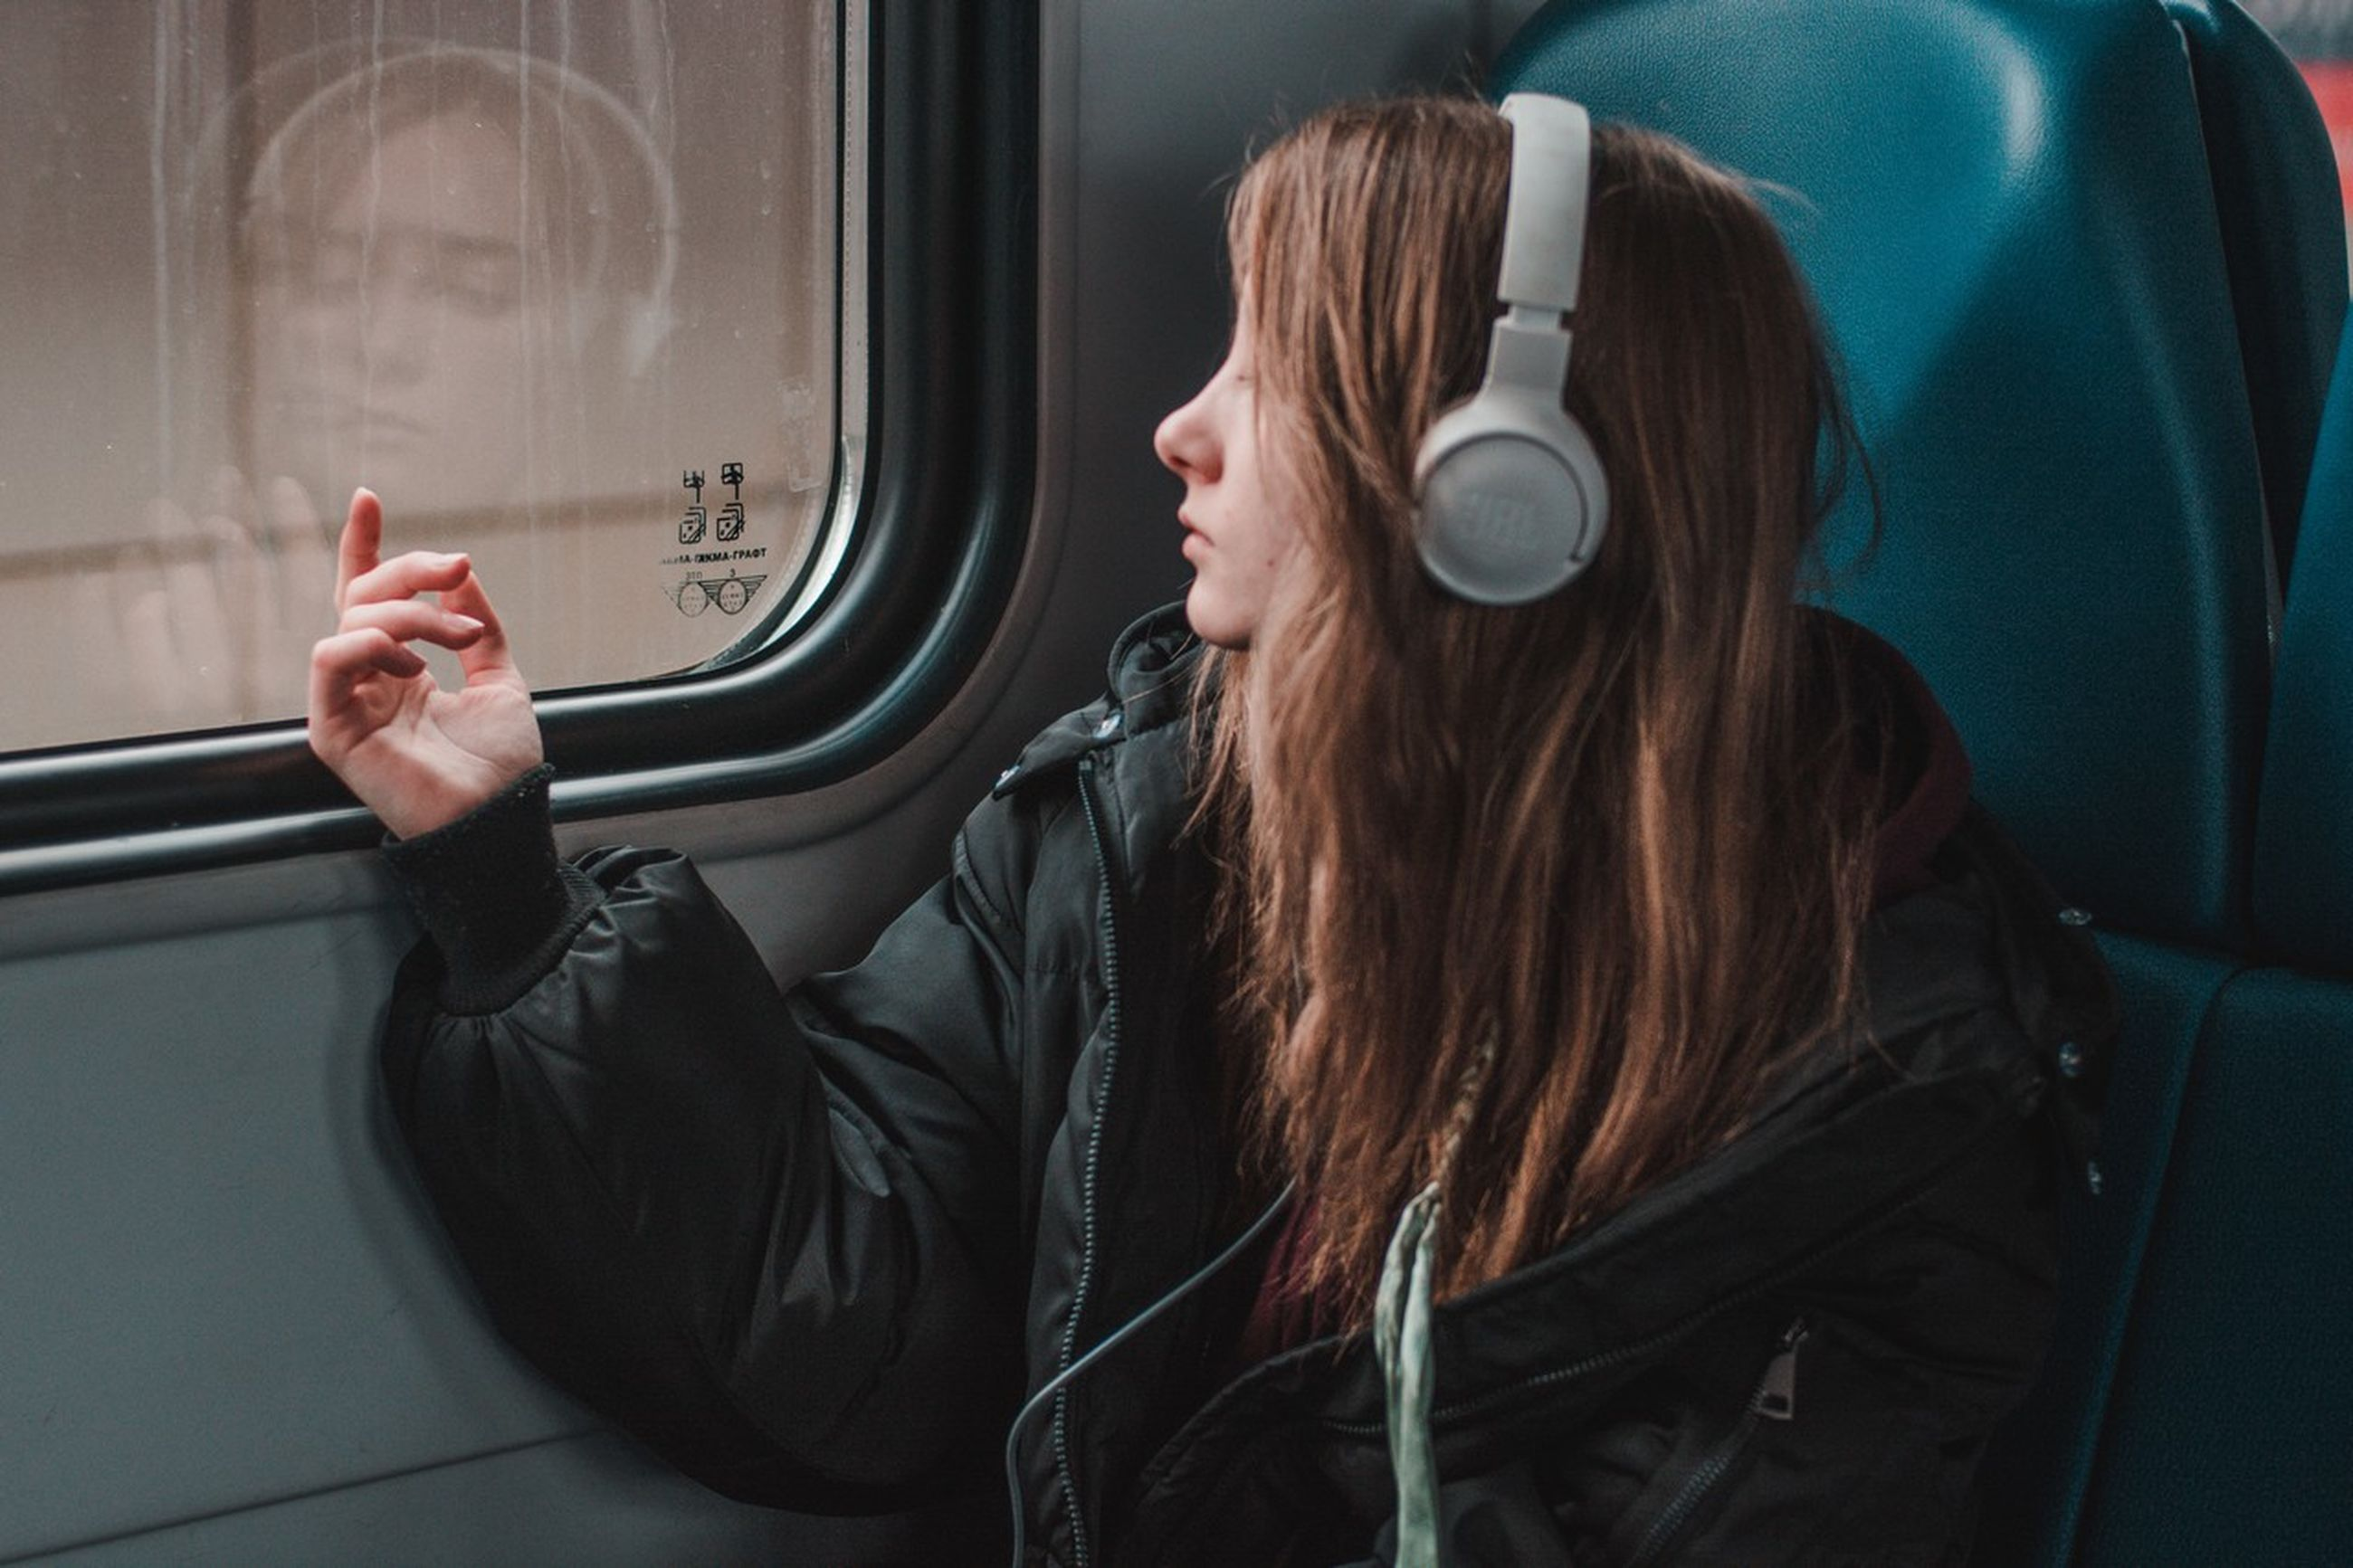 one person, real people, music, headphones, lifestyles, indoors, leisure activity, listening, vehicle interior, casual clothing, mode of transportation, long hair, women, transportation, young adult, hairstyle, public transportation, adult